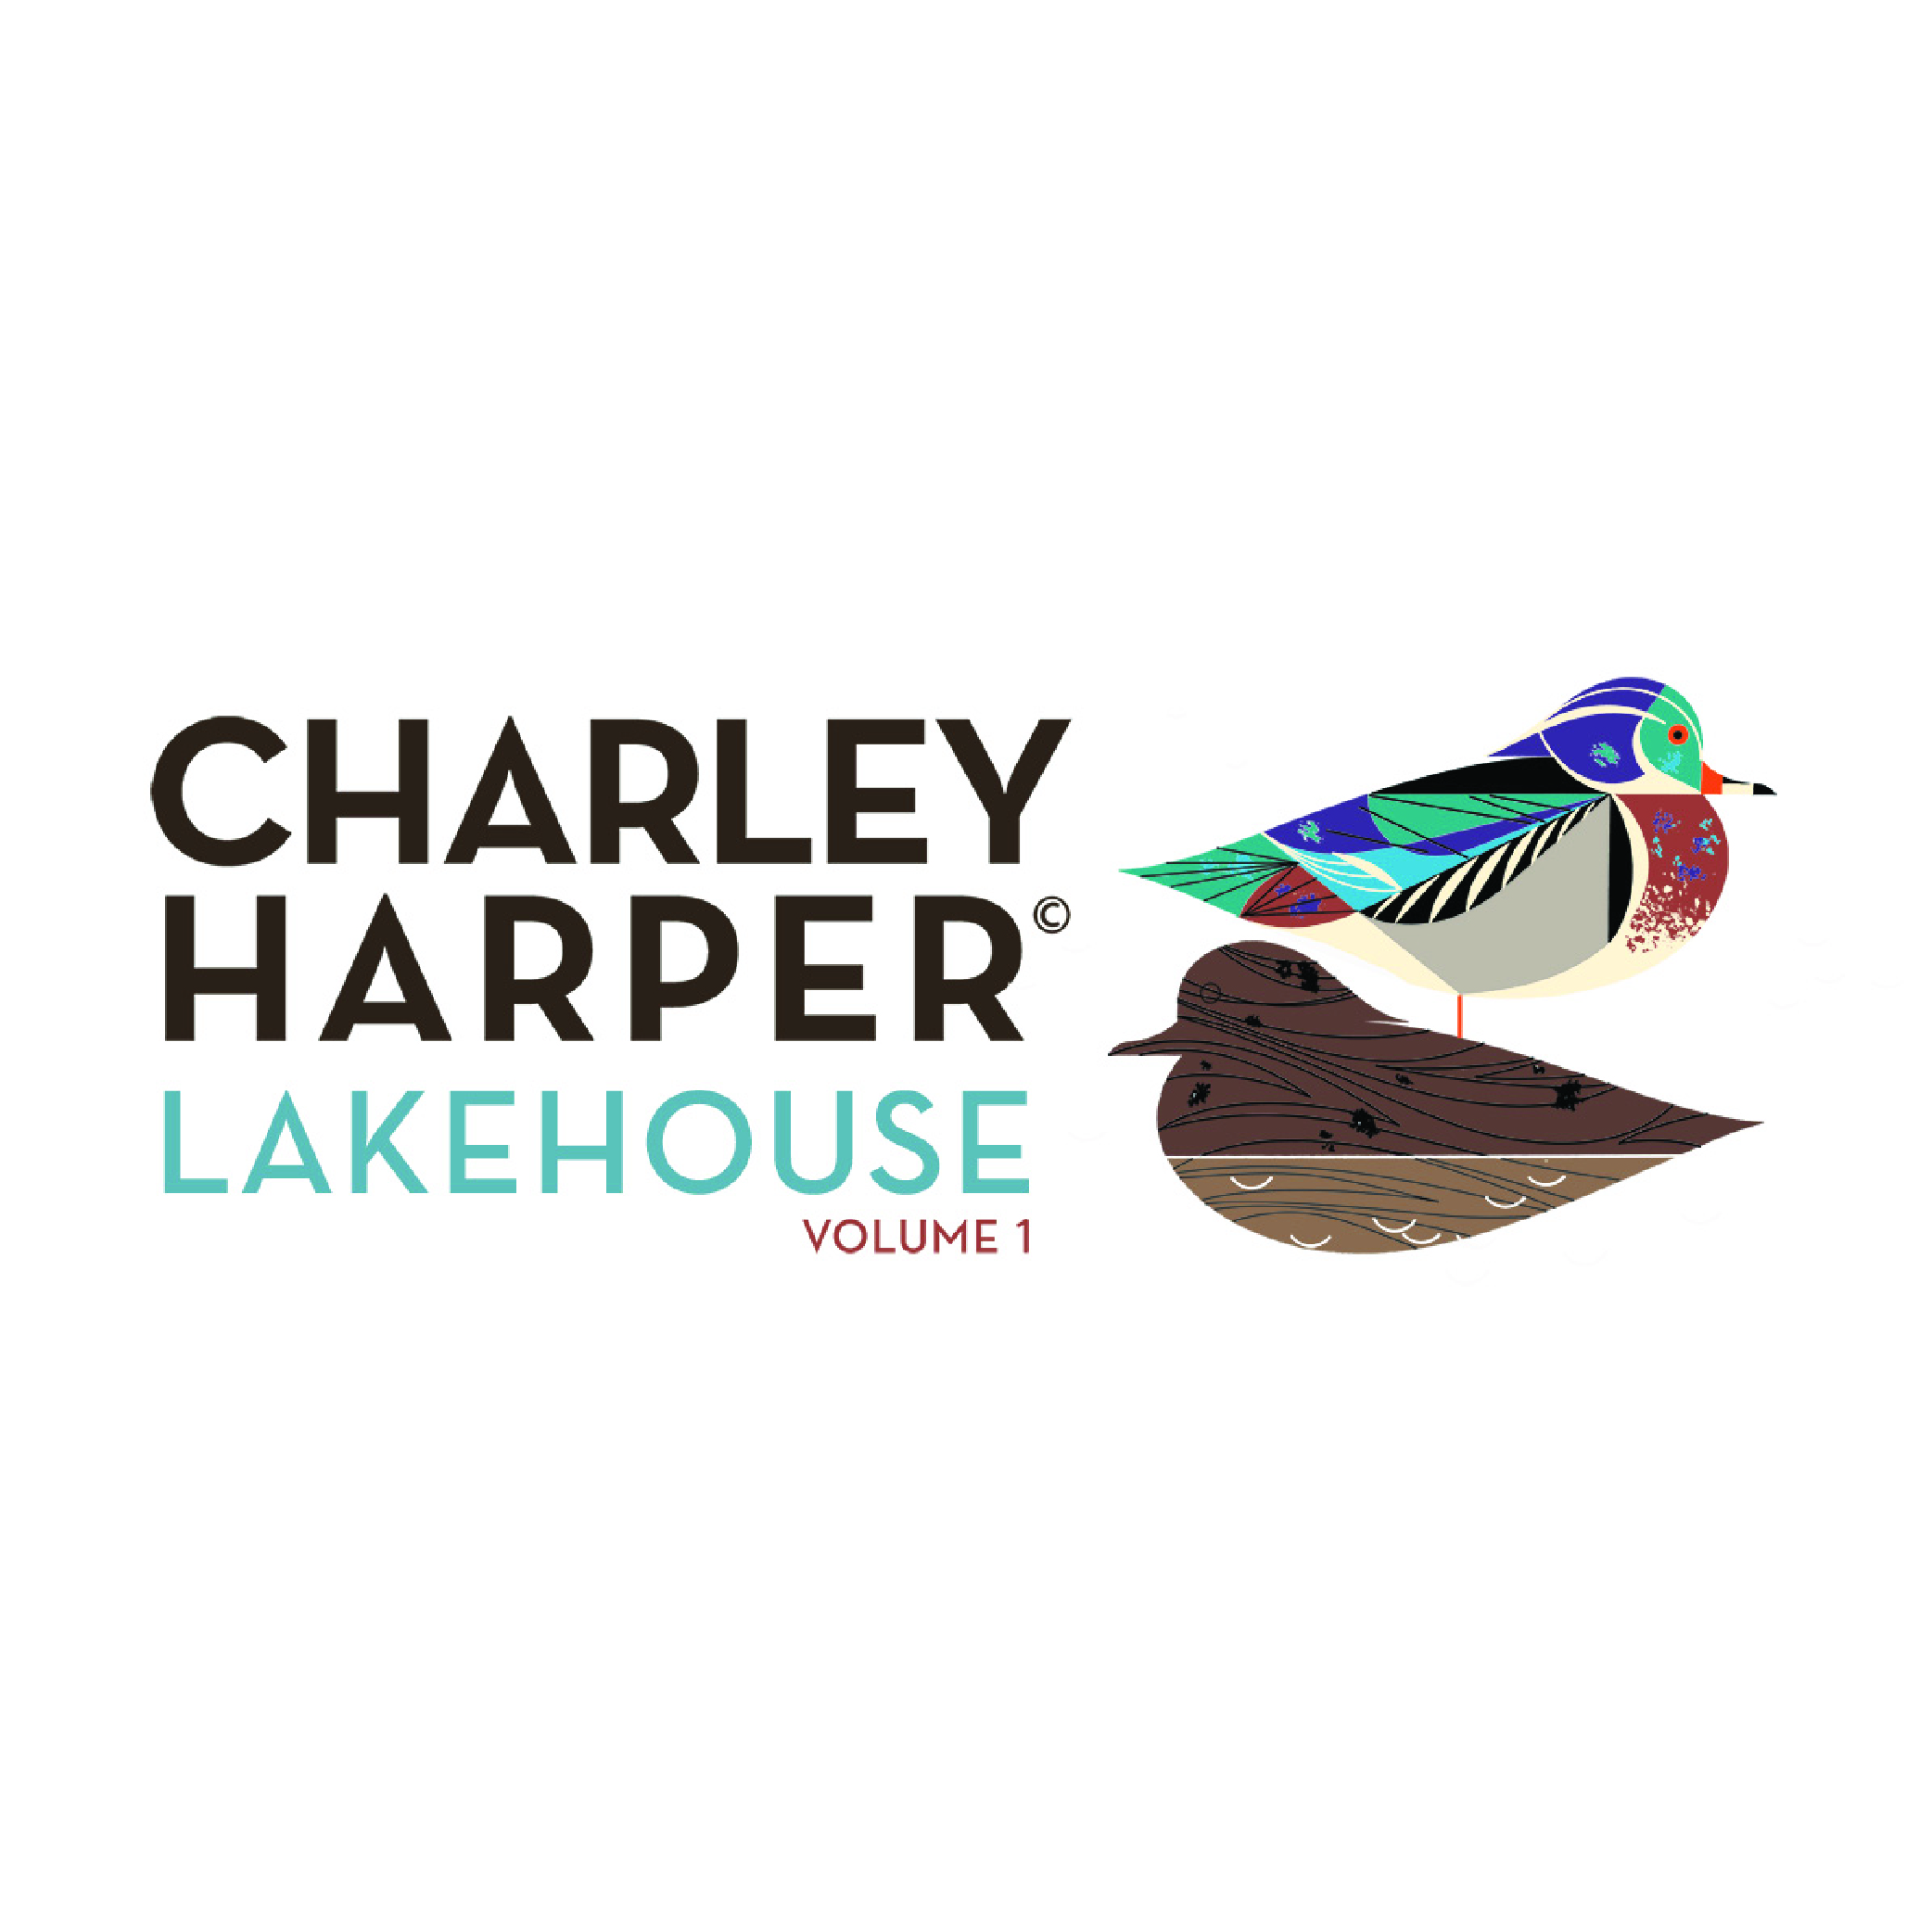 Charley Harper Lakehouse Vol. 1 Swatch Pack